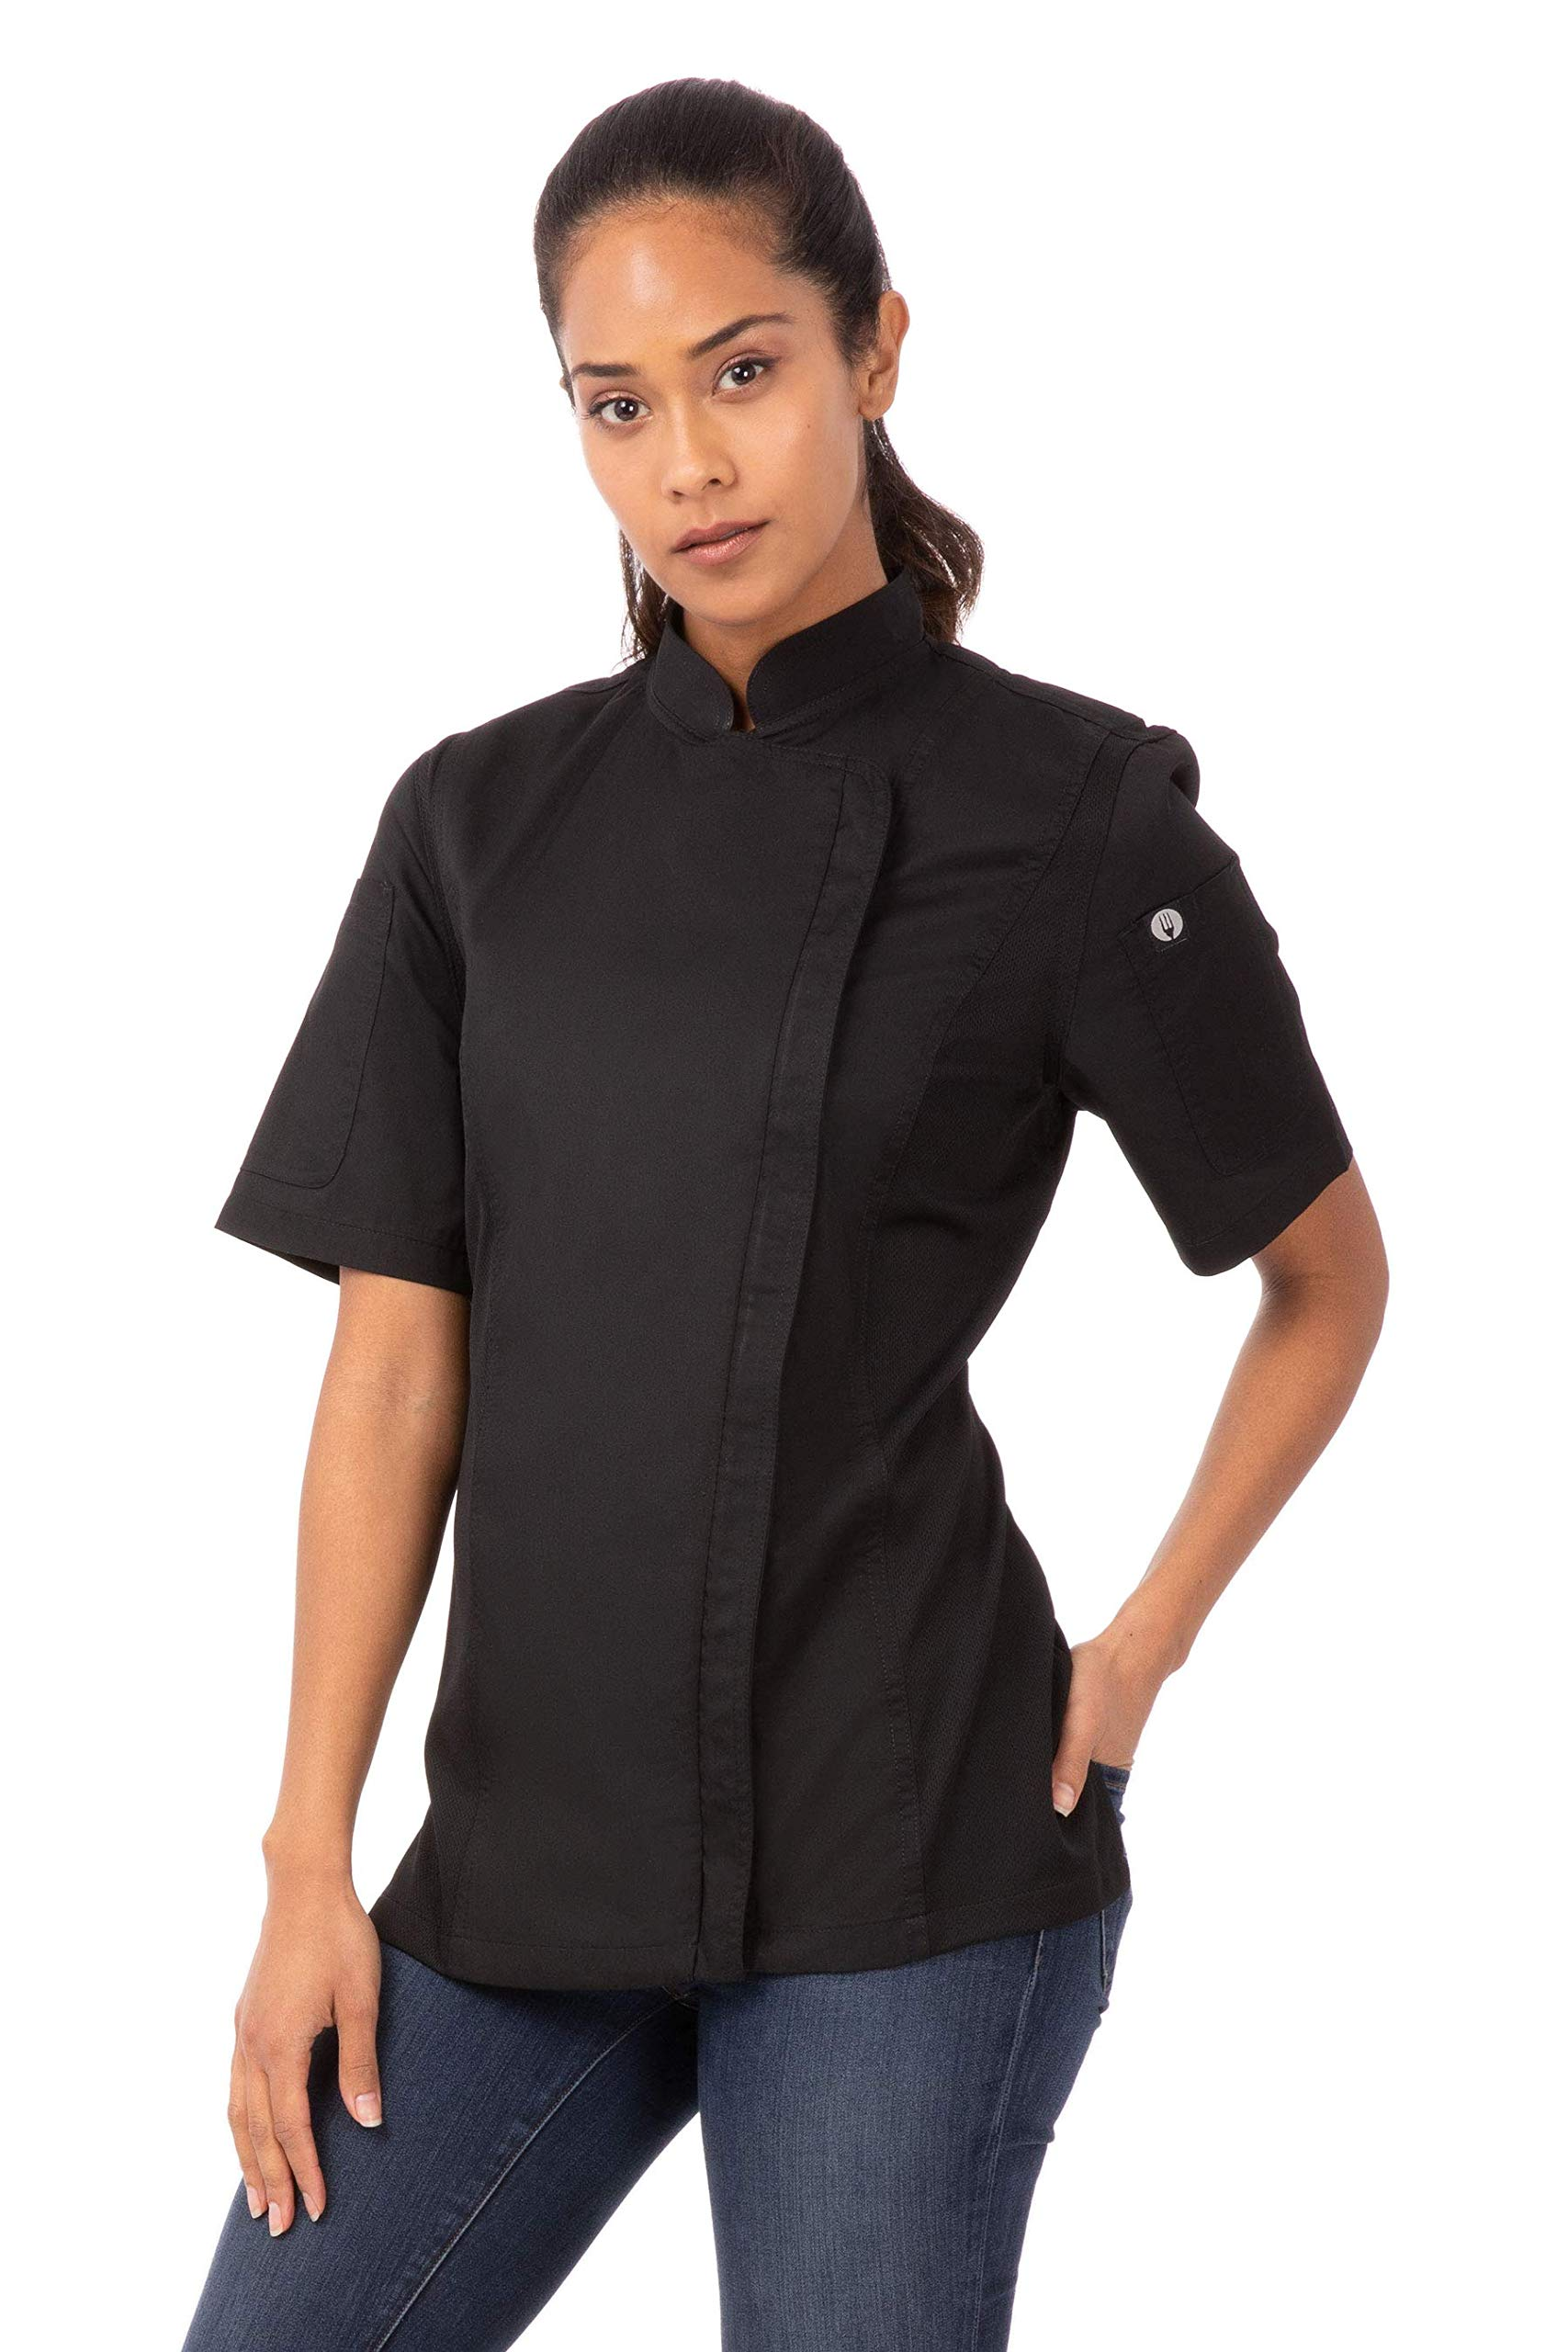 Chef Works Women's Springfield Chef Coat, Black, X-Small by Chef Works